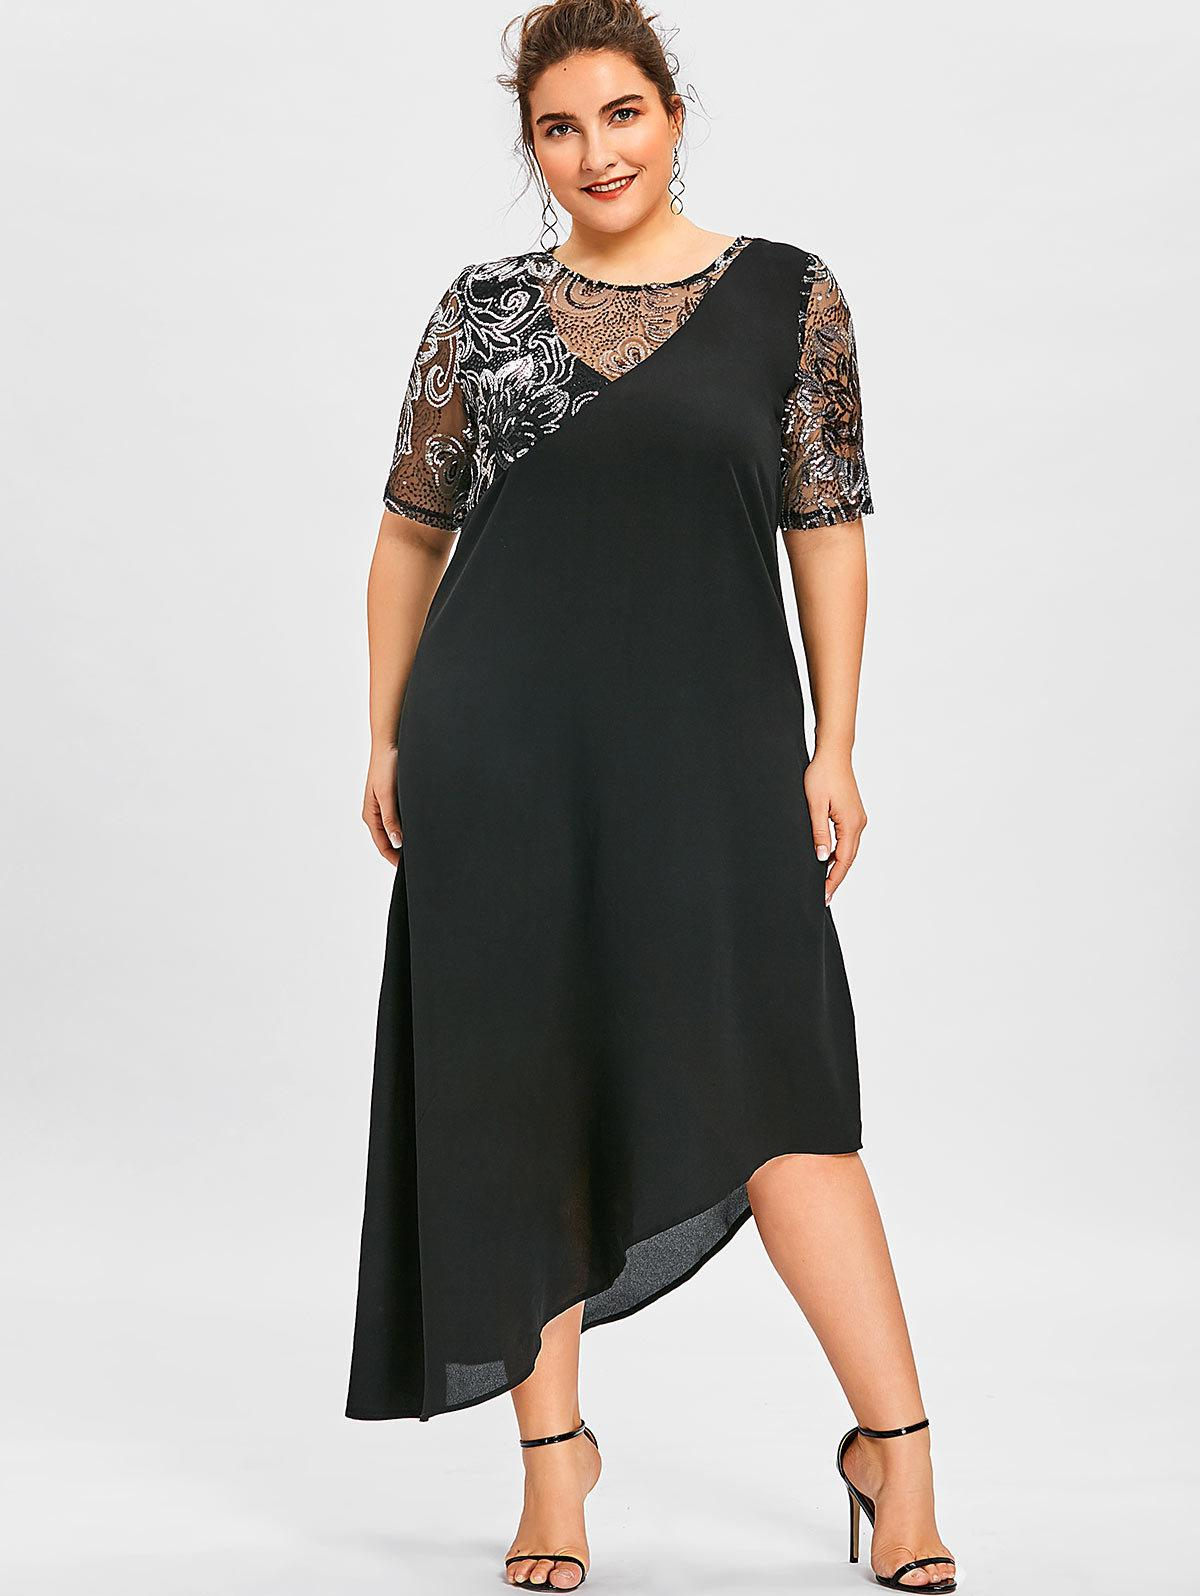 2019 Wipalo Women Sparkly Party Dresses Plus Size 5xl Sequined ...